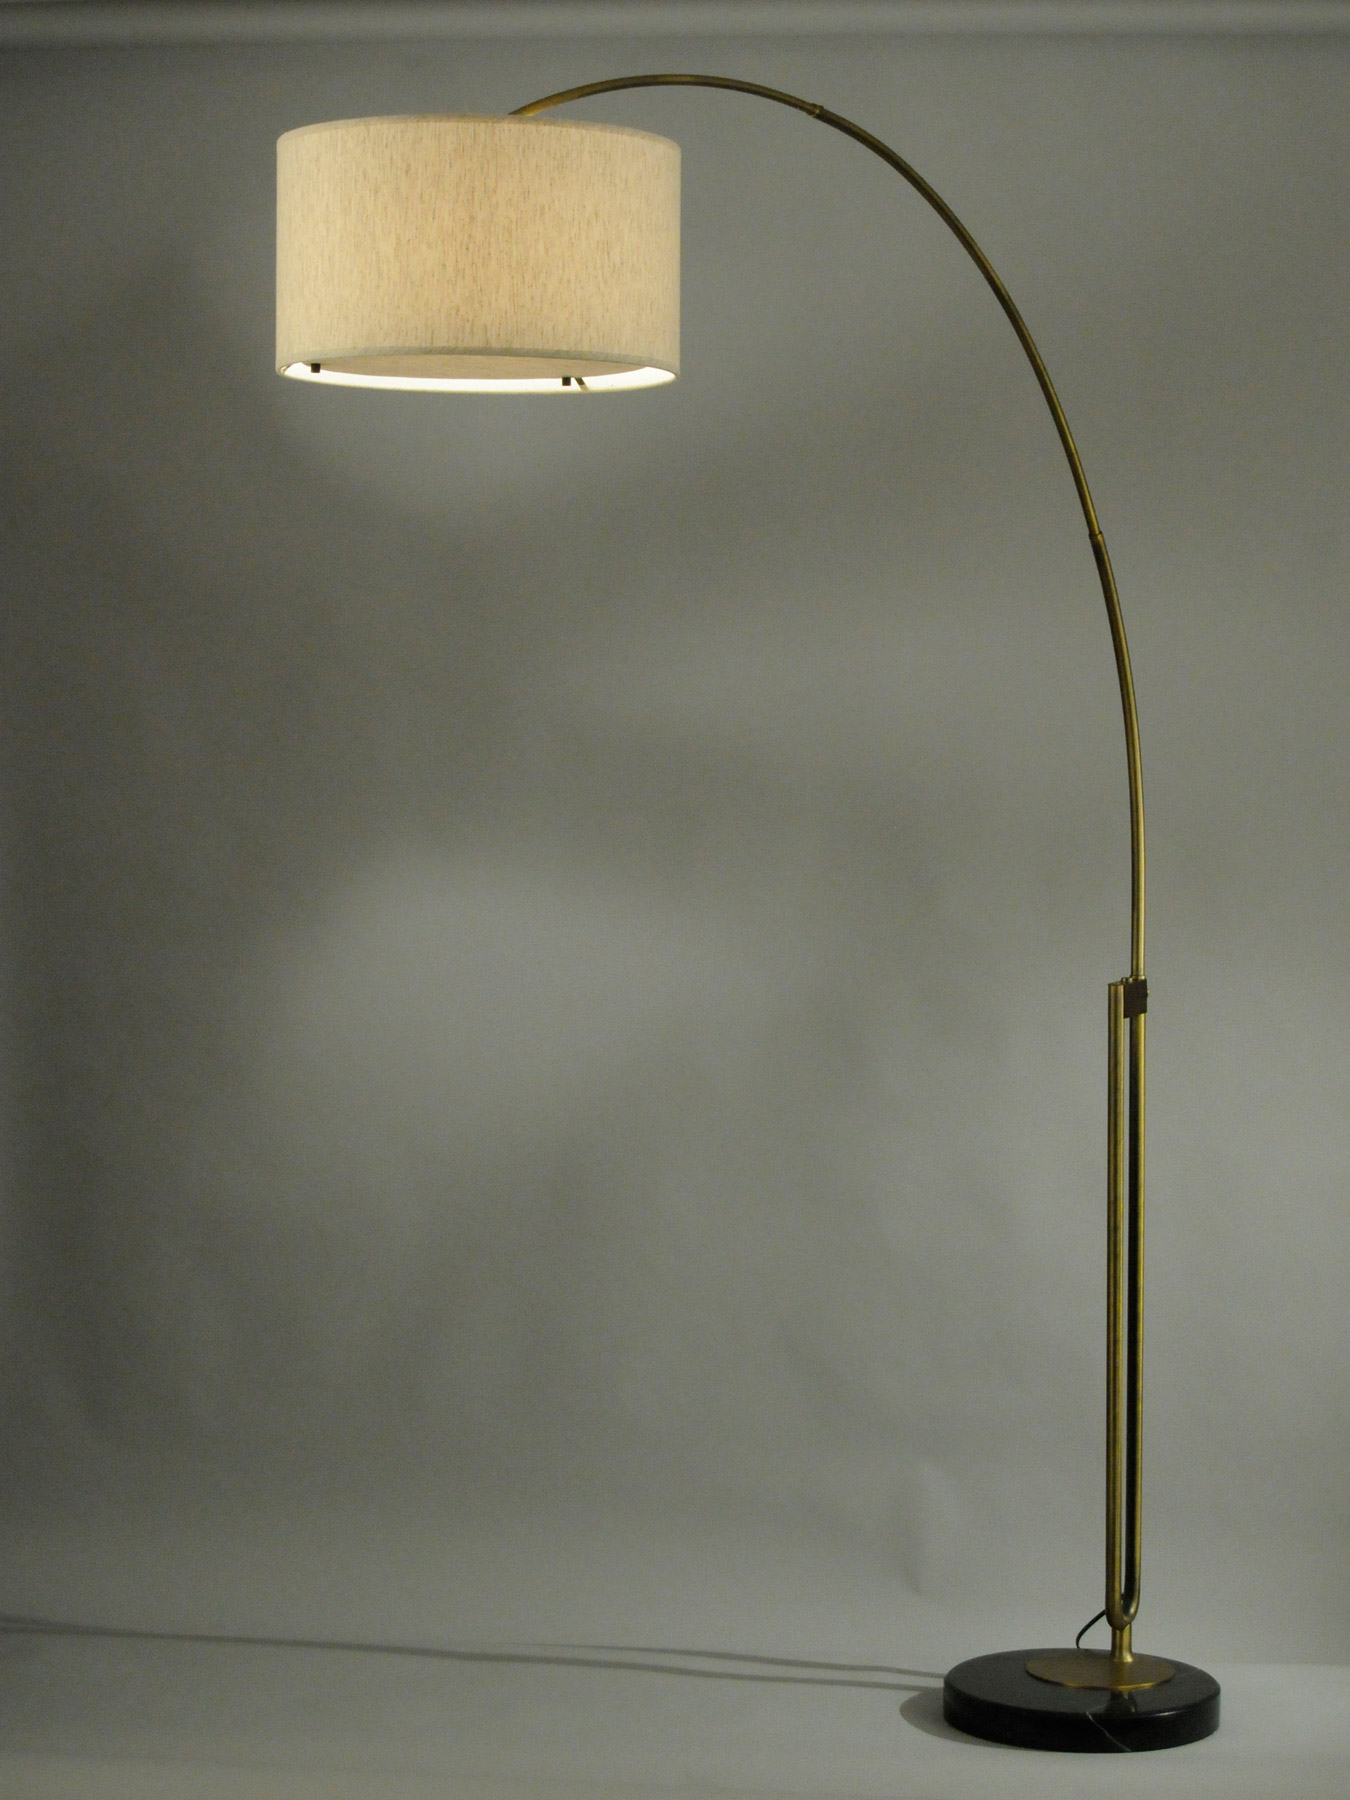 Nova Lighting 2110104 Viborg Arc Floor Lamp